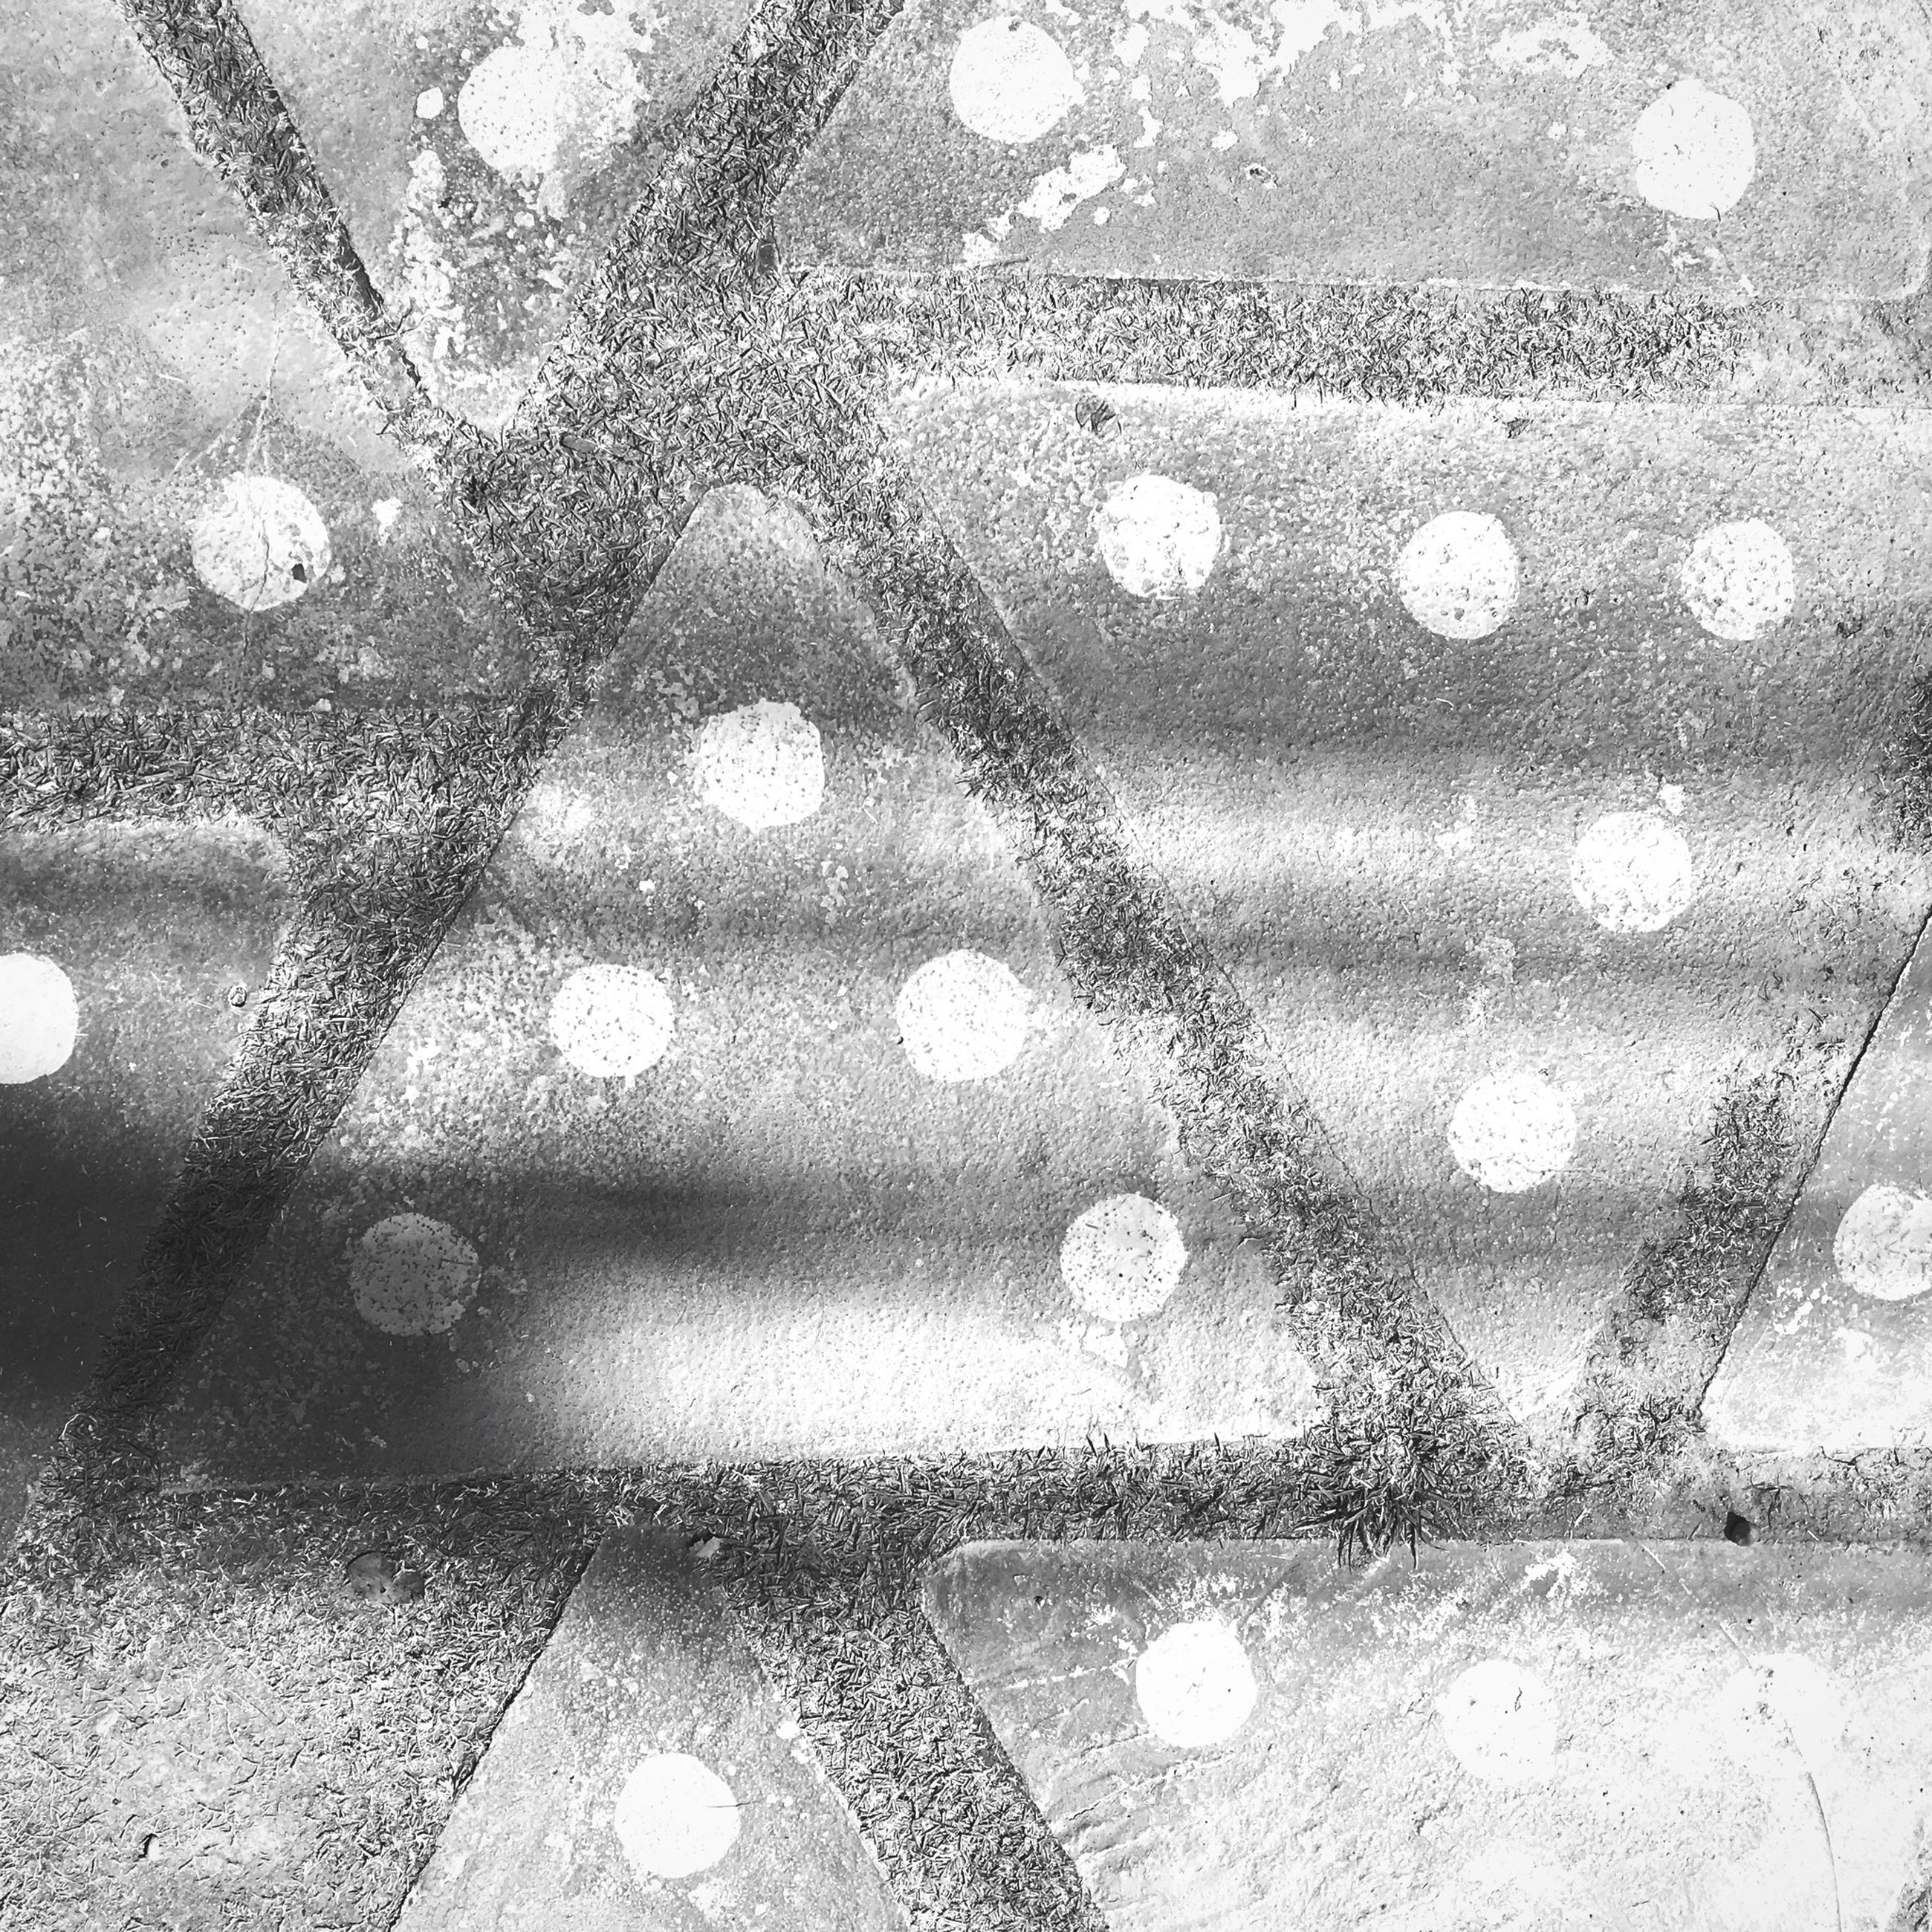 full frame, indoors, wet, backgrounds, water, drop, pattern, rain, close-up, glass - material, reflection, transparent, textured, raindrop, no people, window, design, glass, abstract, purity